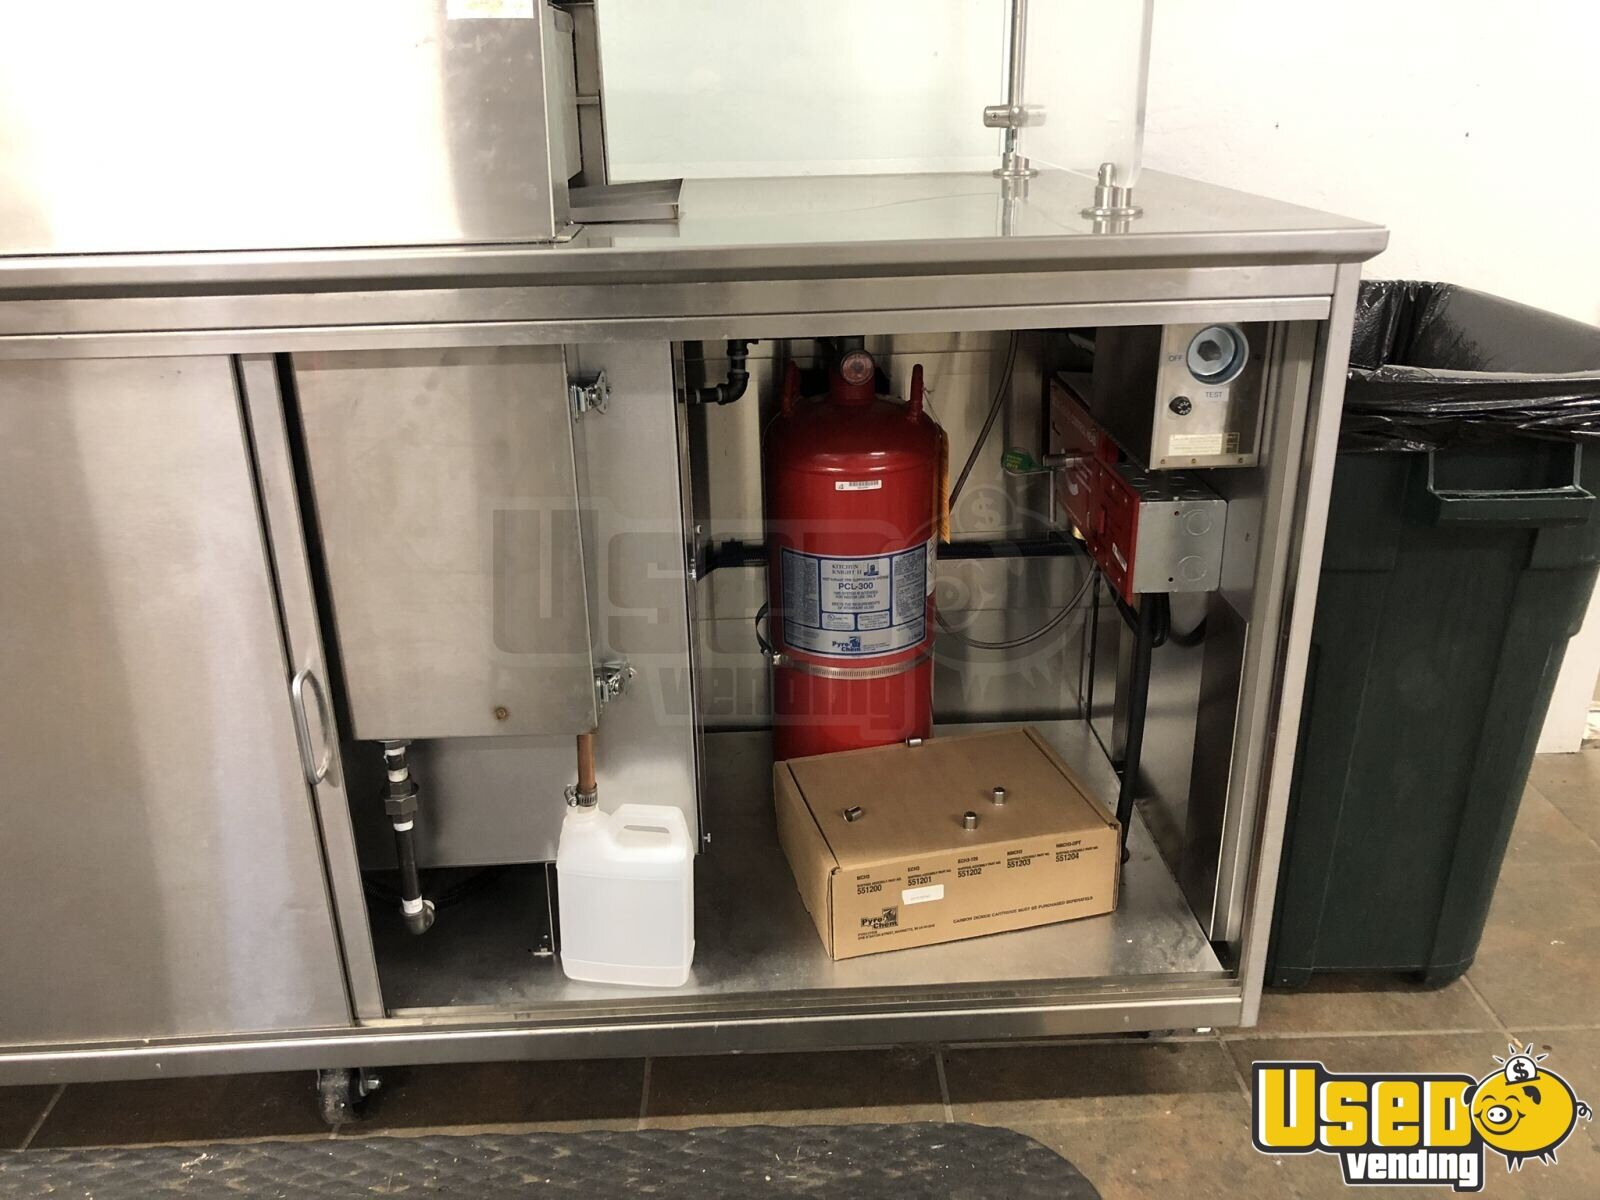 2017 Lil Orbits Ss2400 With Advanced Filtration Cabinet Cart 4 Wisconsin for Sale - 4